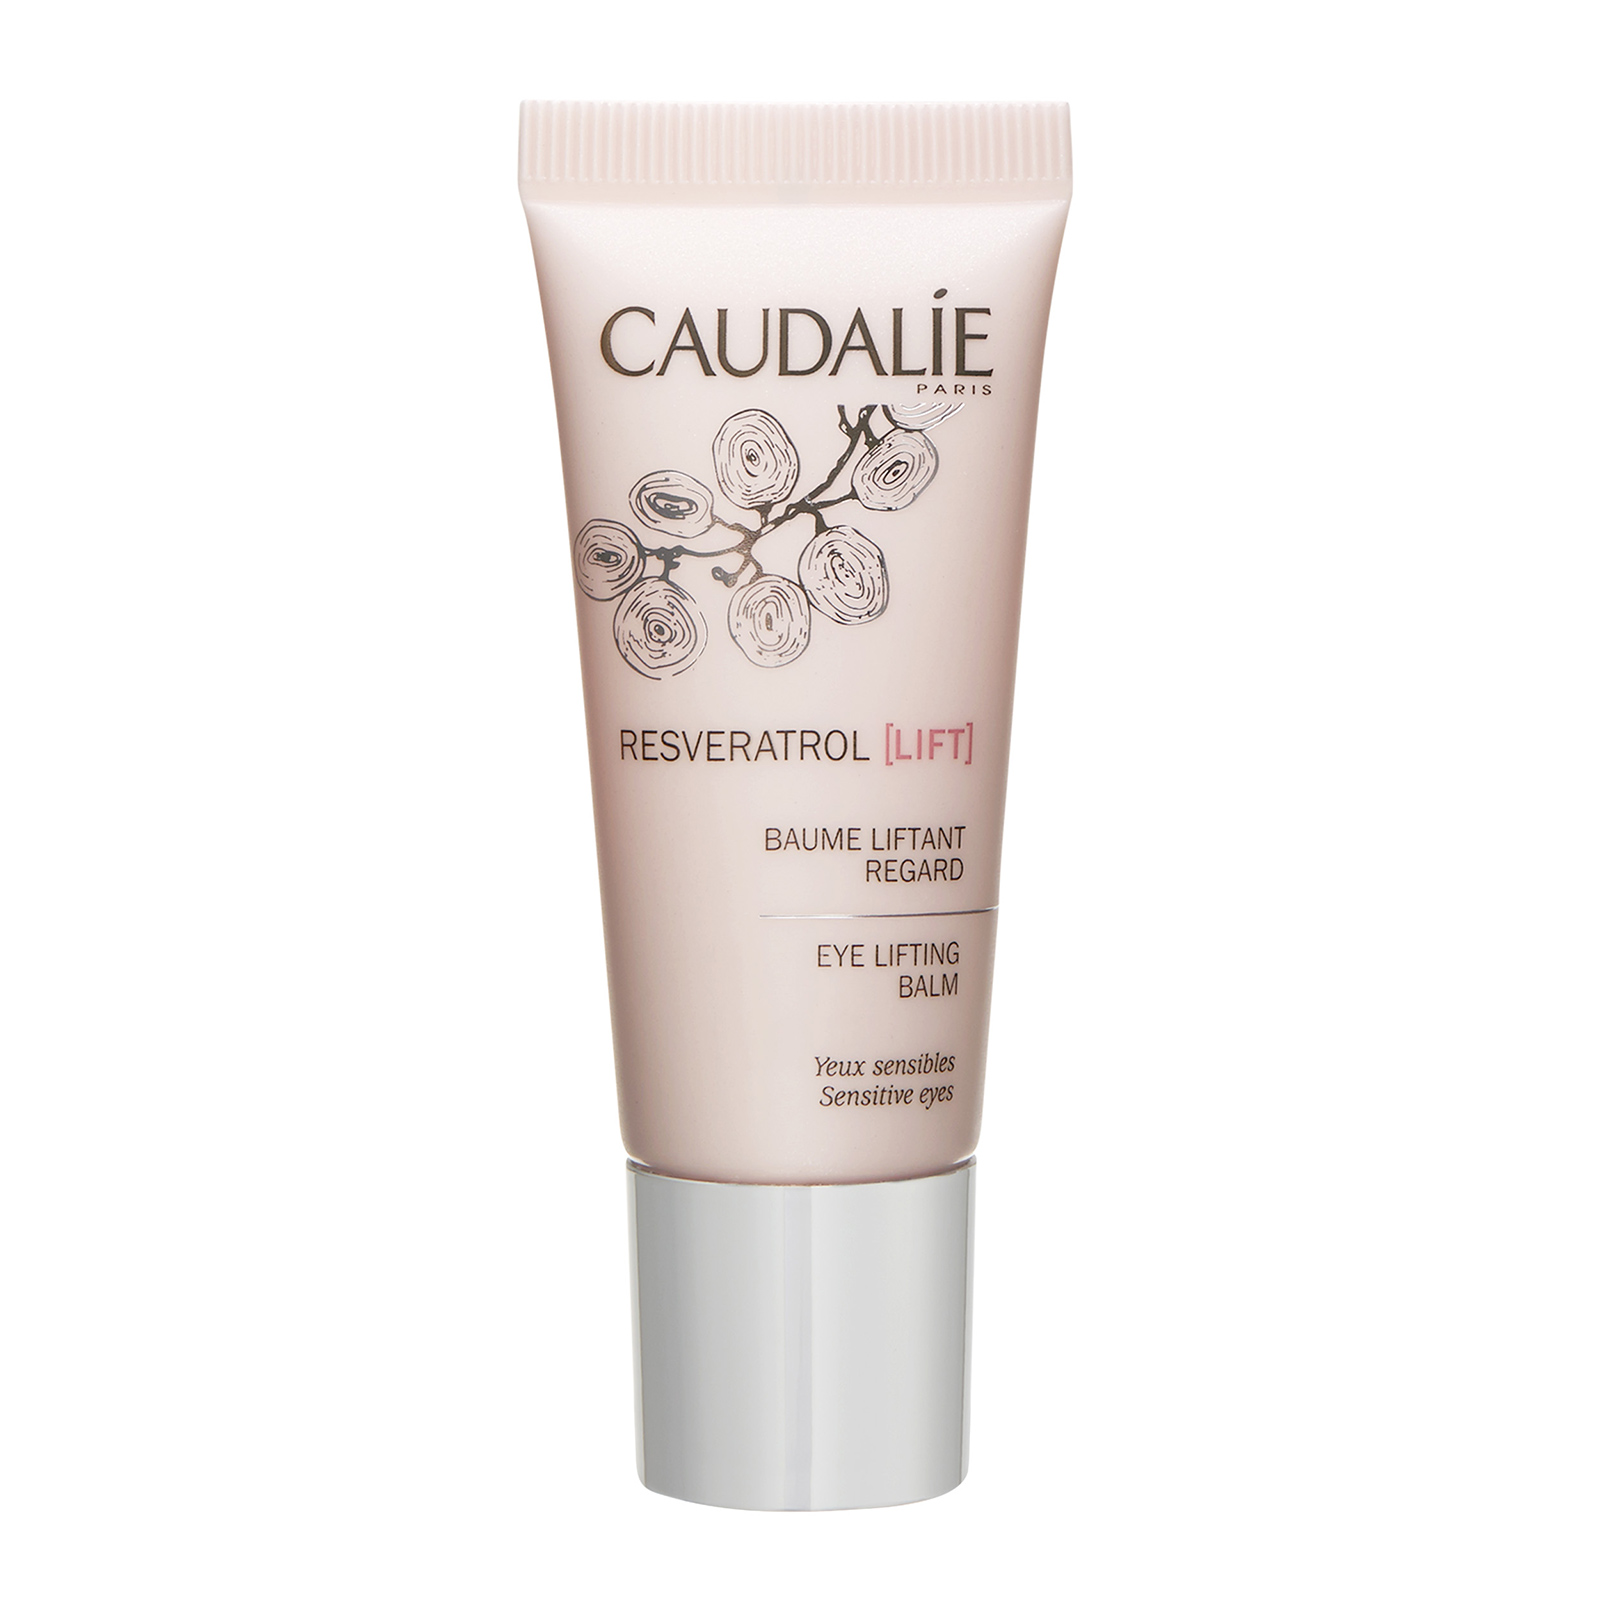 CAUDALIE Resveratrol Lift Eye Lifting Balm 0.5oz, 15ml